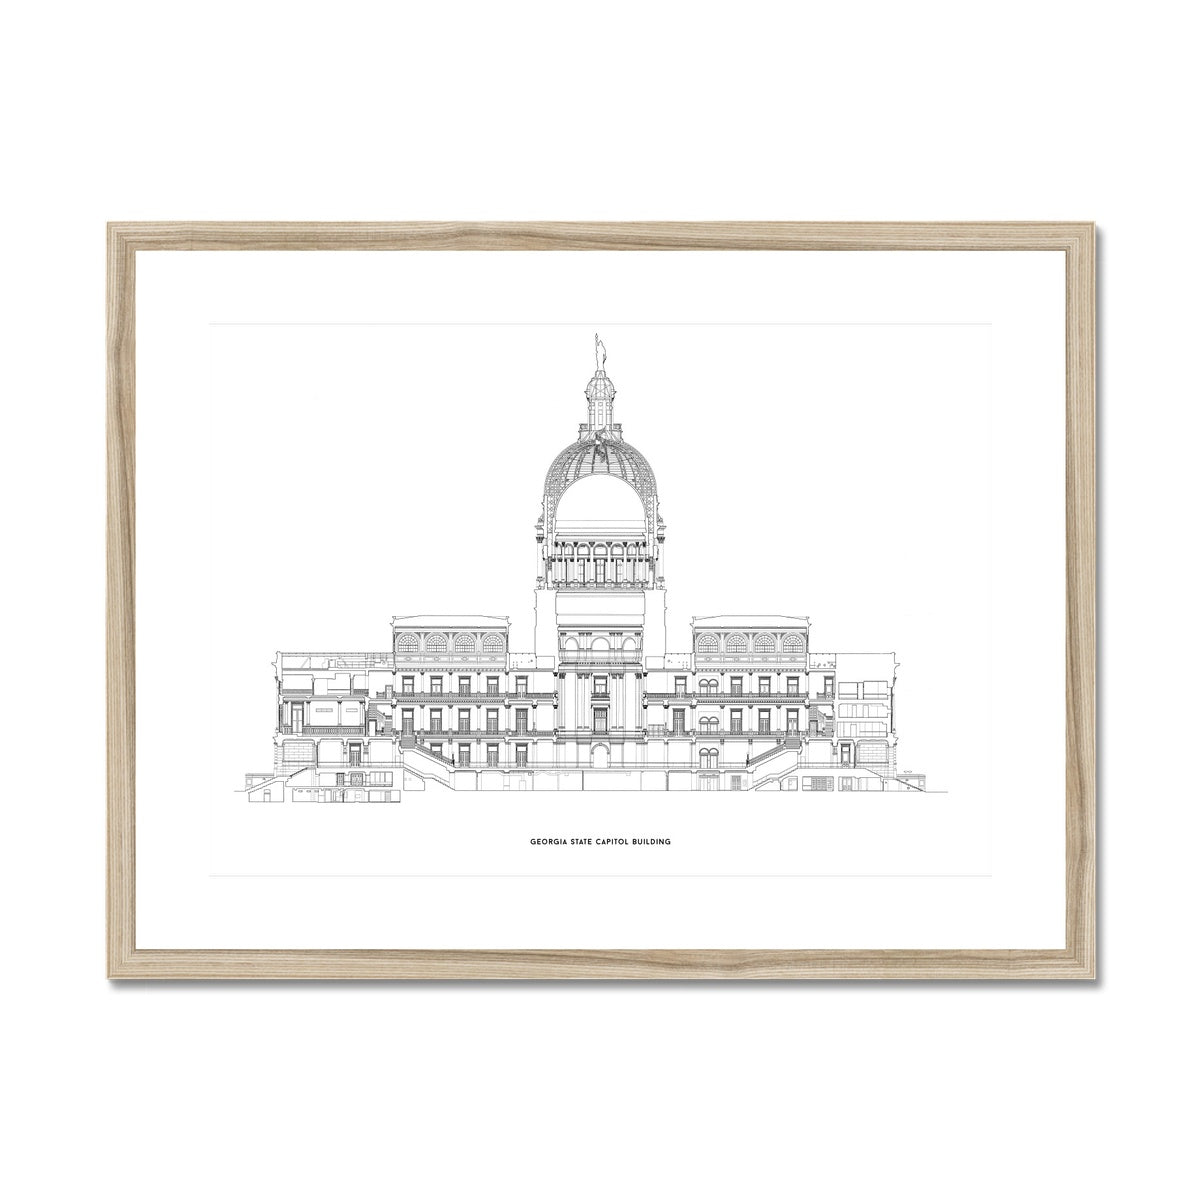 The Georgia State Capitol Building - West Elevation Cross Section - White -  Framed & Mounted Print